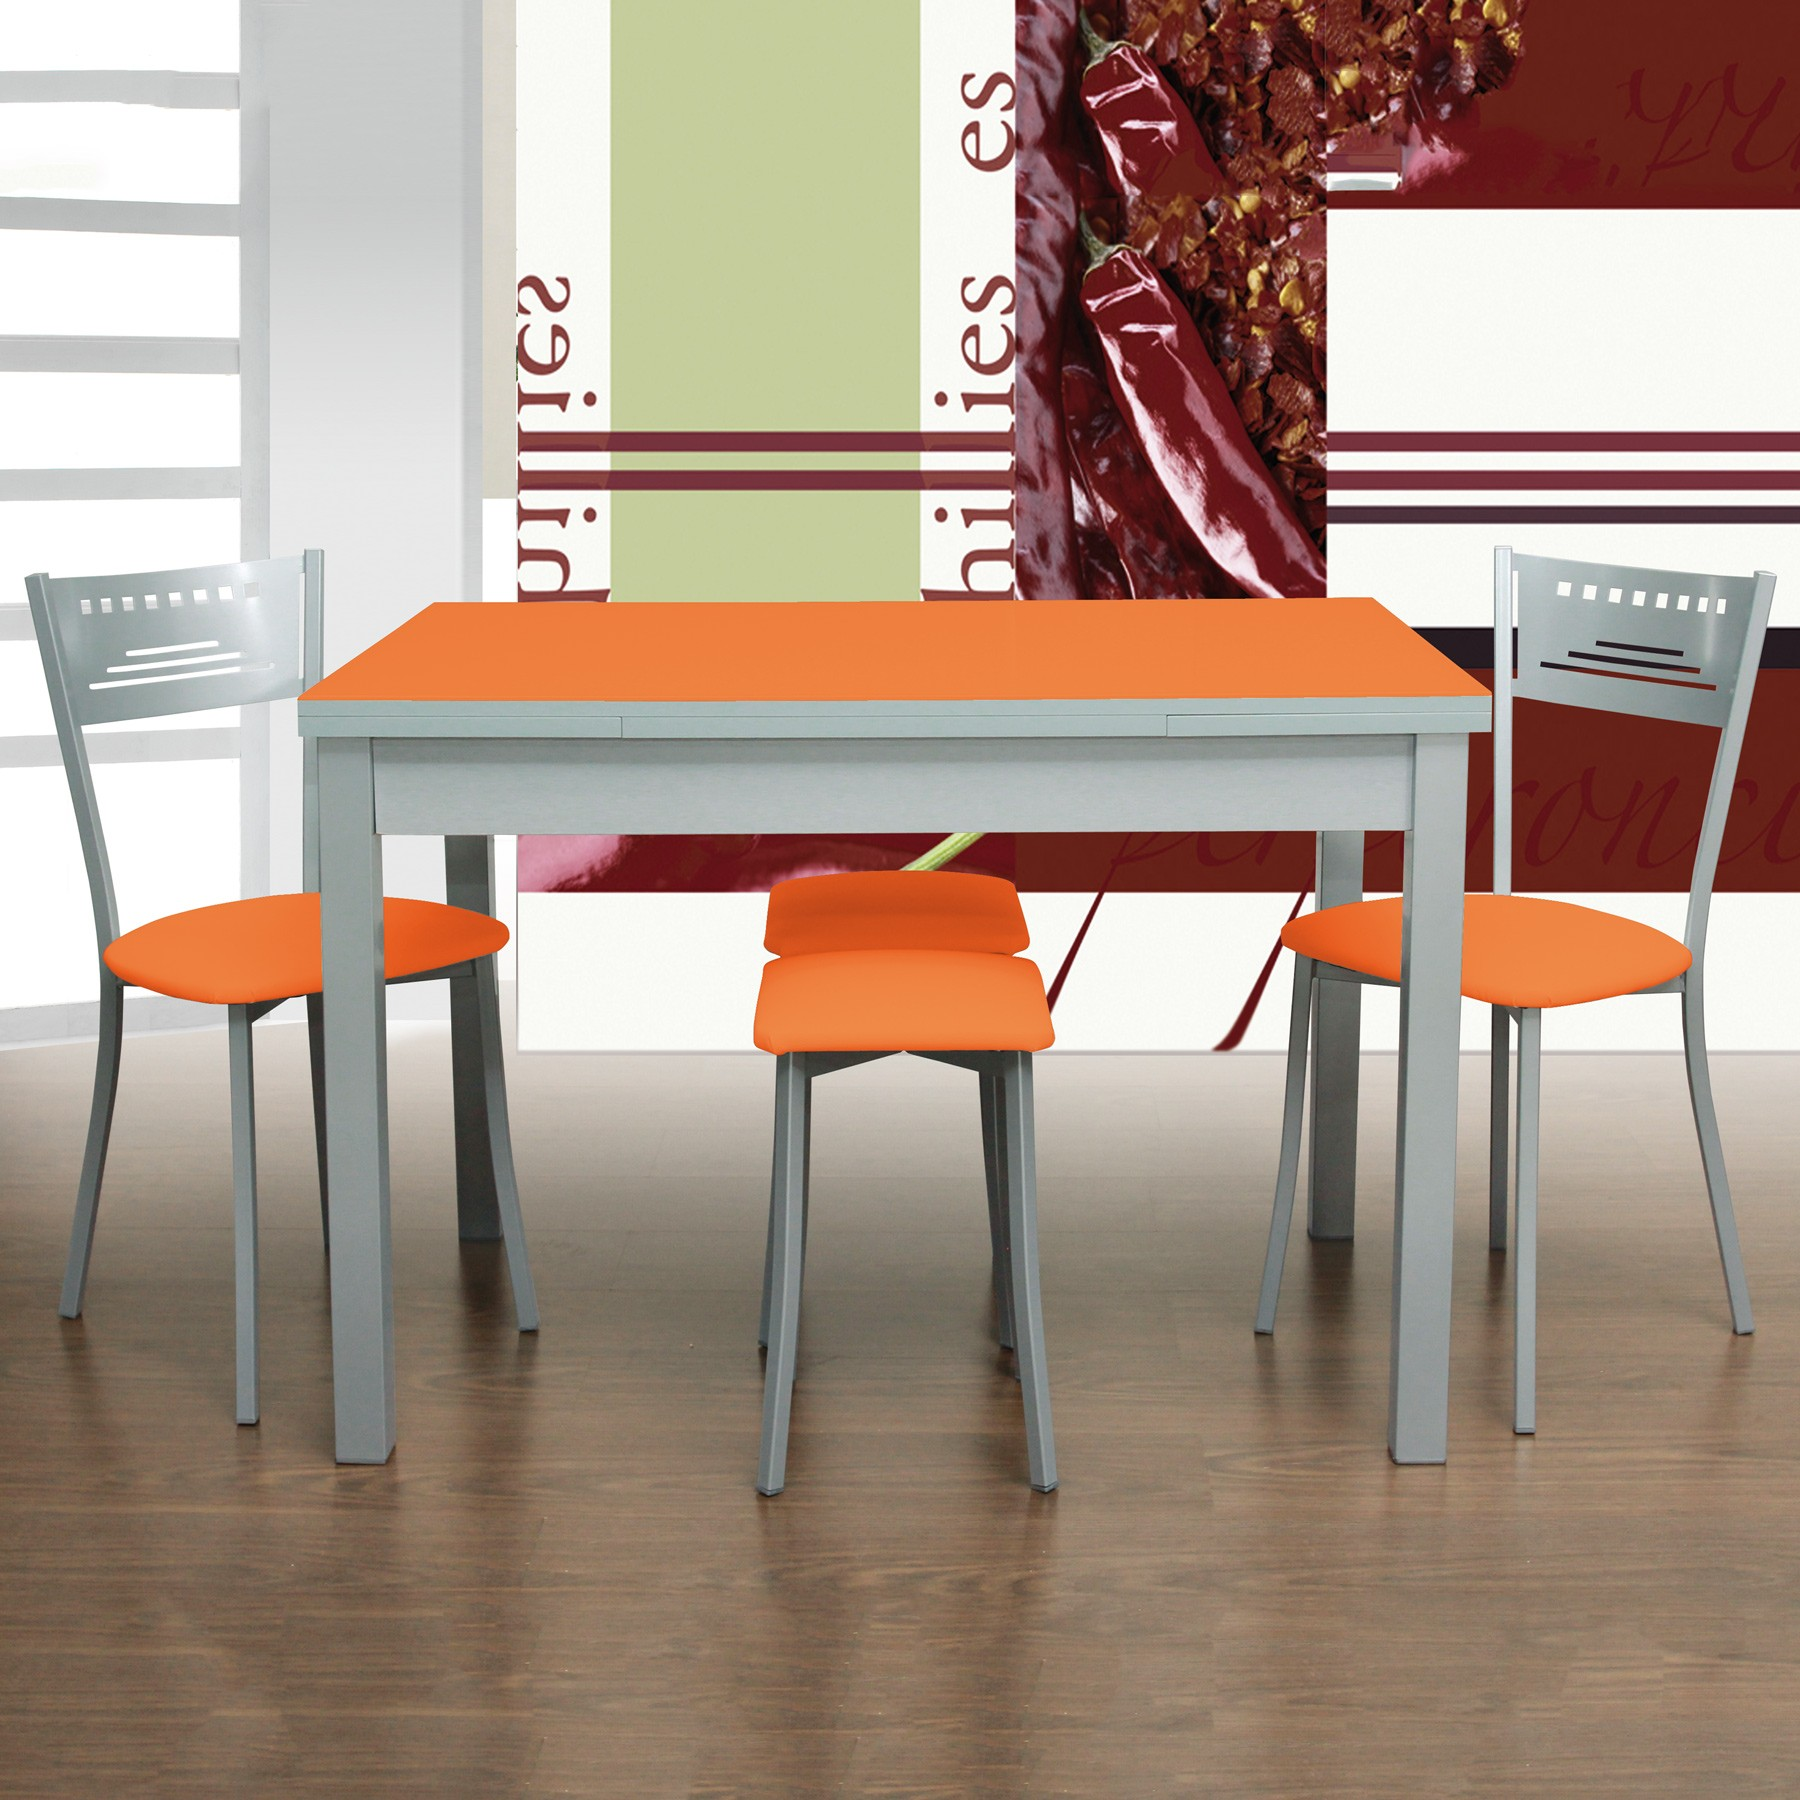 Pack mesa de cocina sillas y o taburetes mod orange for Mesas y sillas para cocinas pequenas